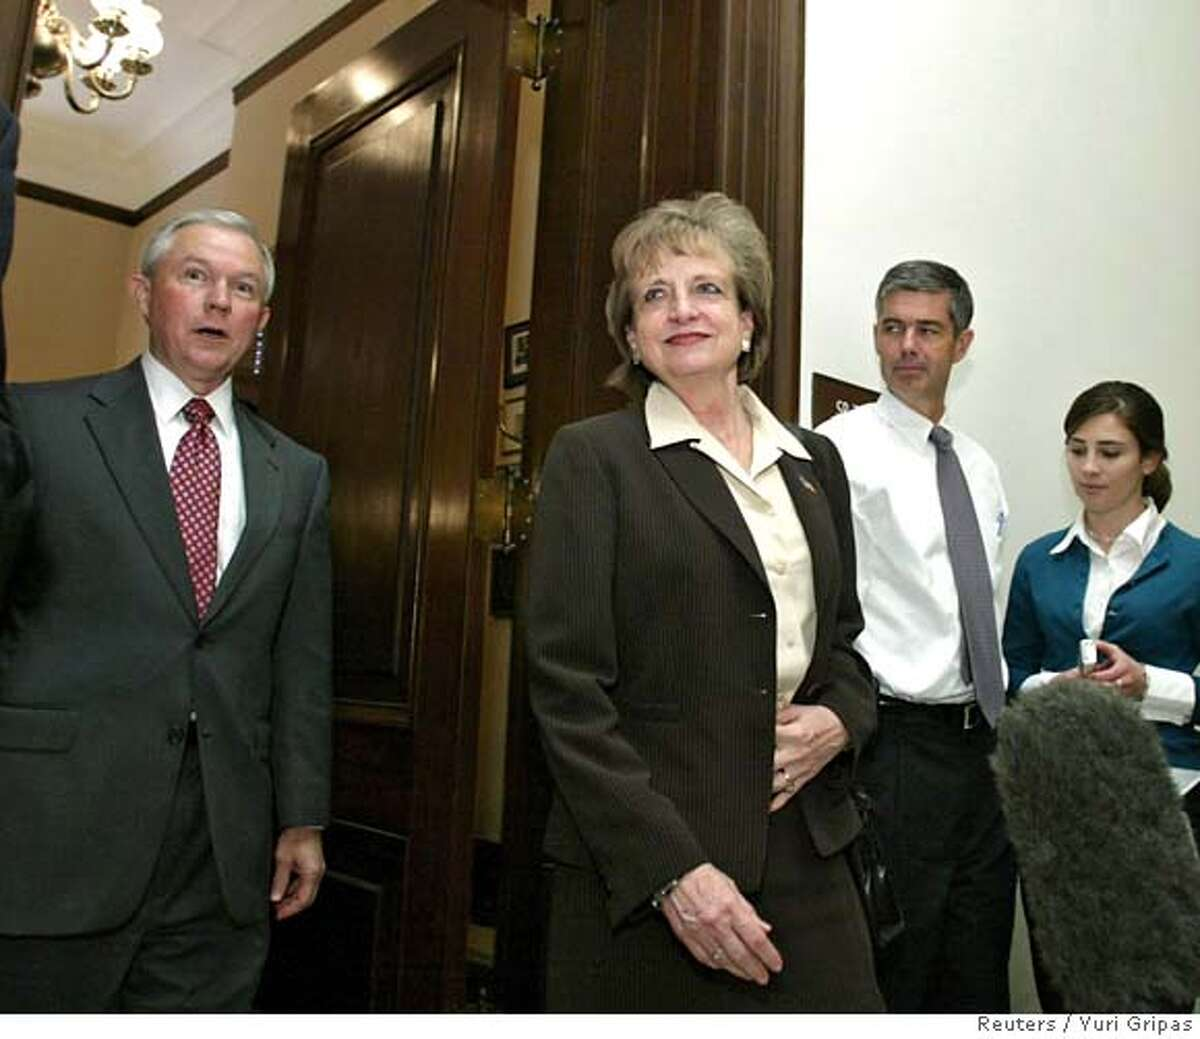 U.S. Supreme Court nominee Harriet Miers (C) and Senator Jeff Sessions (R-AL) (L) walk out to meet journalists after their meeting at the Hart Senate office building on Capitol Hill in Washington October 4, 2005. President George W. Bush on Tuesday defended his choice of White House counsel Miers for the Supreme Court and rejected charges of cronyism from some Republicans who questioned whether she will be sufficiently conservative to shift the court to the right. REUTERS/Yuri Gripas 0